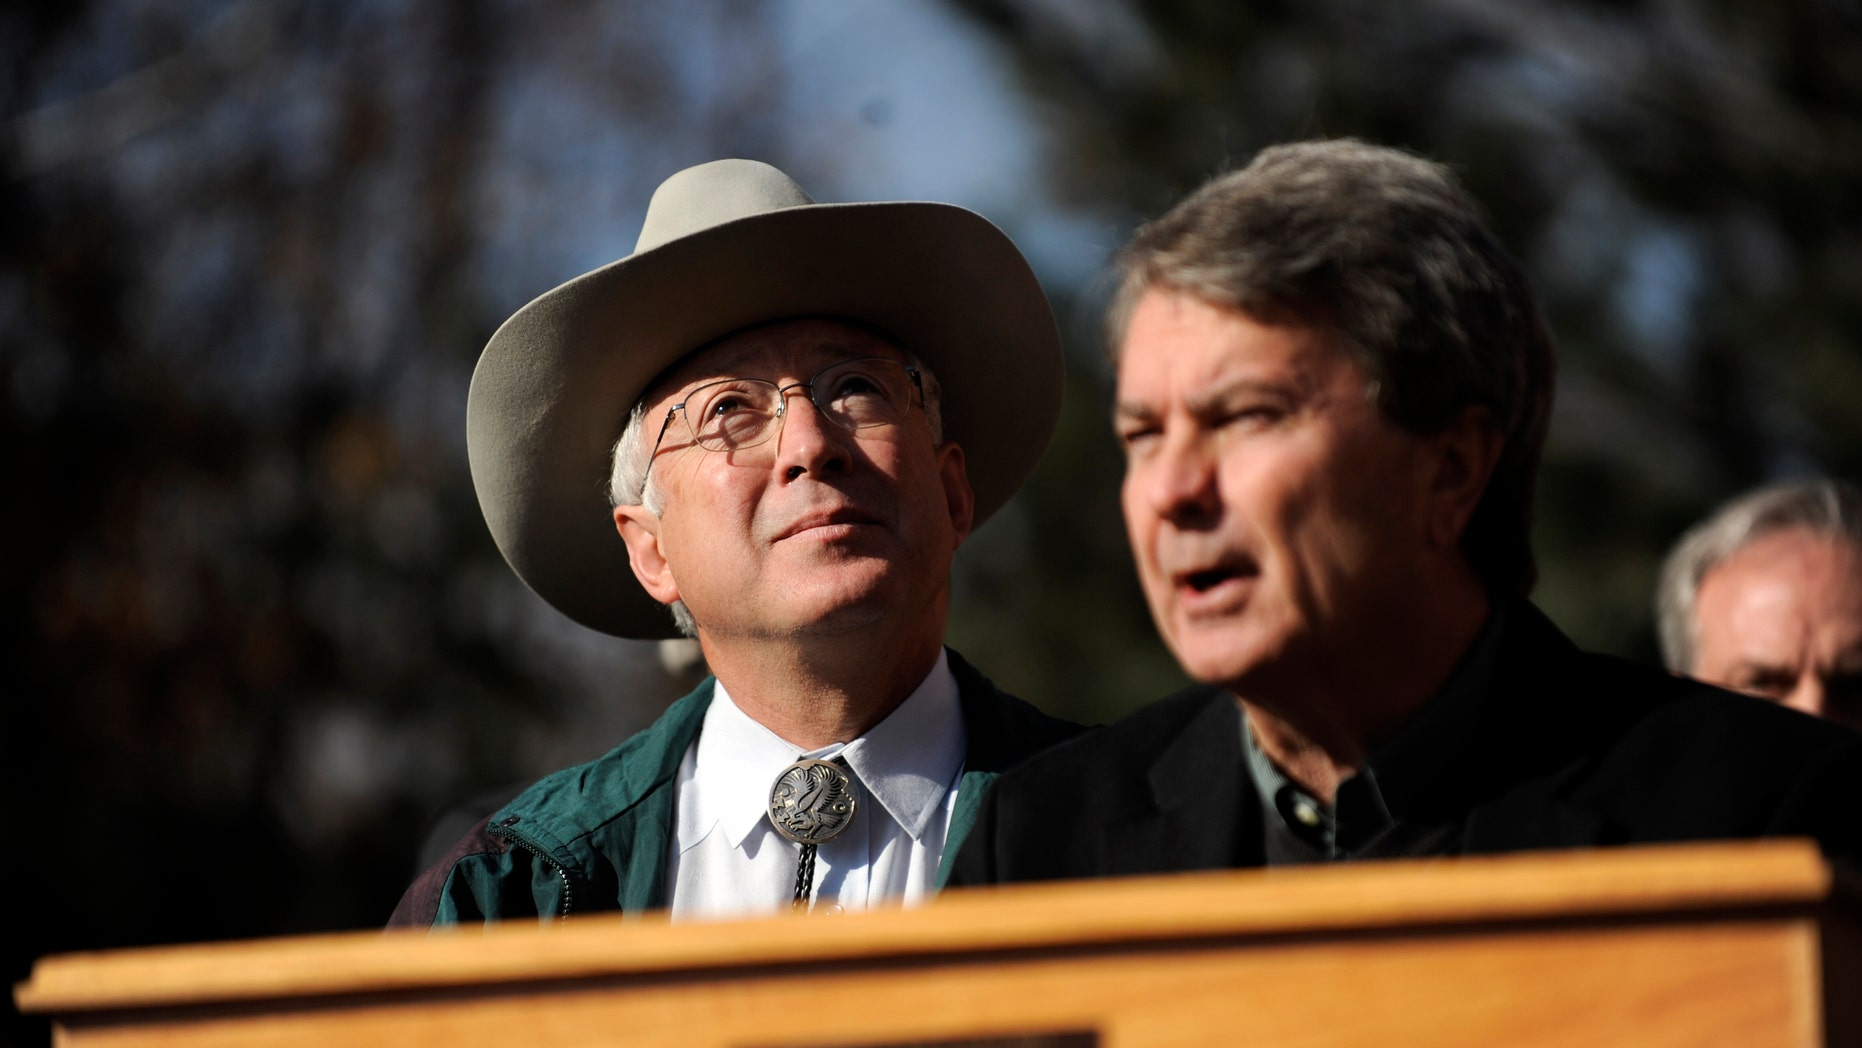 Secretary of the Interior Ken Salazar watches geese fly overhead as Bureau of Land Management Director Bob Abbey speaks about an initiative that would allow the BLM to designate and protect wilderness areas on Thursday, Dec. 23, 2010 outside of REI in Denver. (AP)